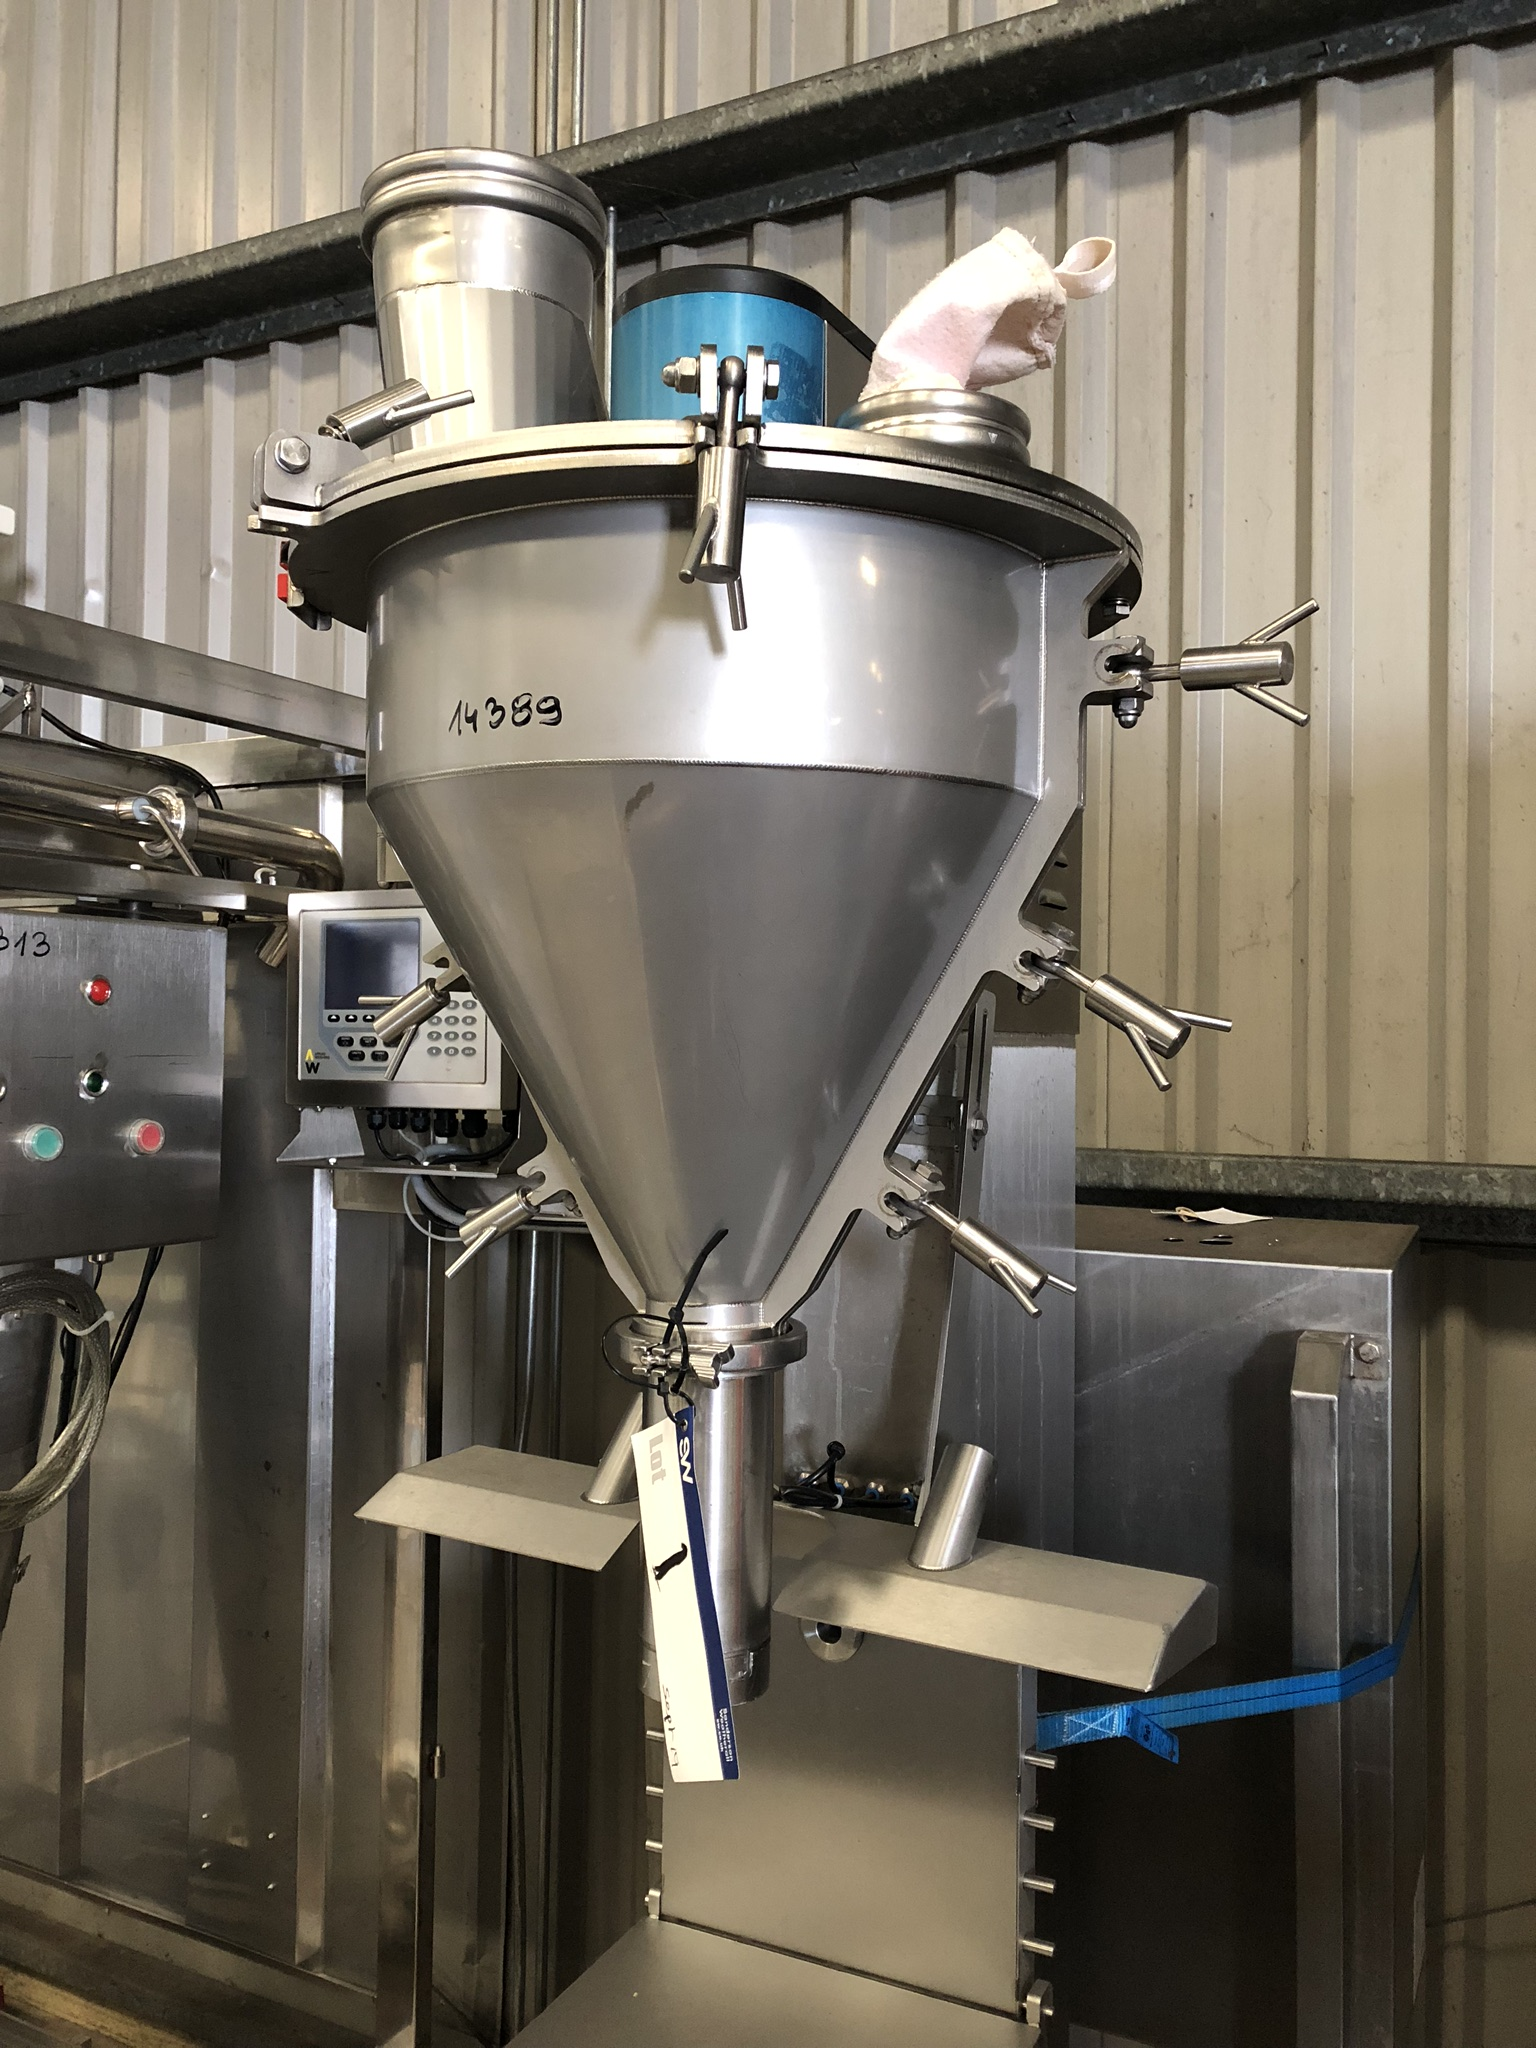 Applied Weighing POWDER FILLER, serial no. 141004, year of manufacture 2014, approx. 2.2m high x - Image 3 of 4